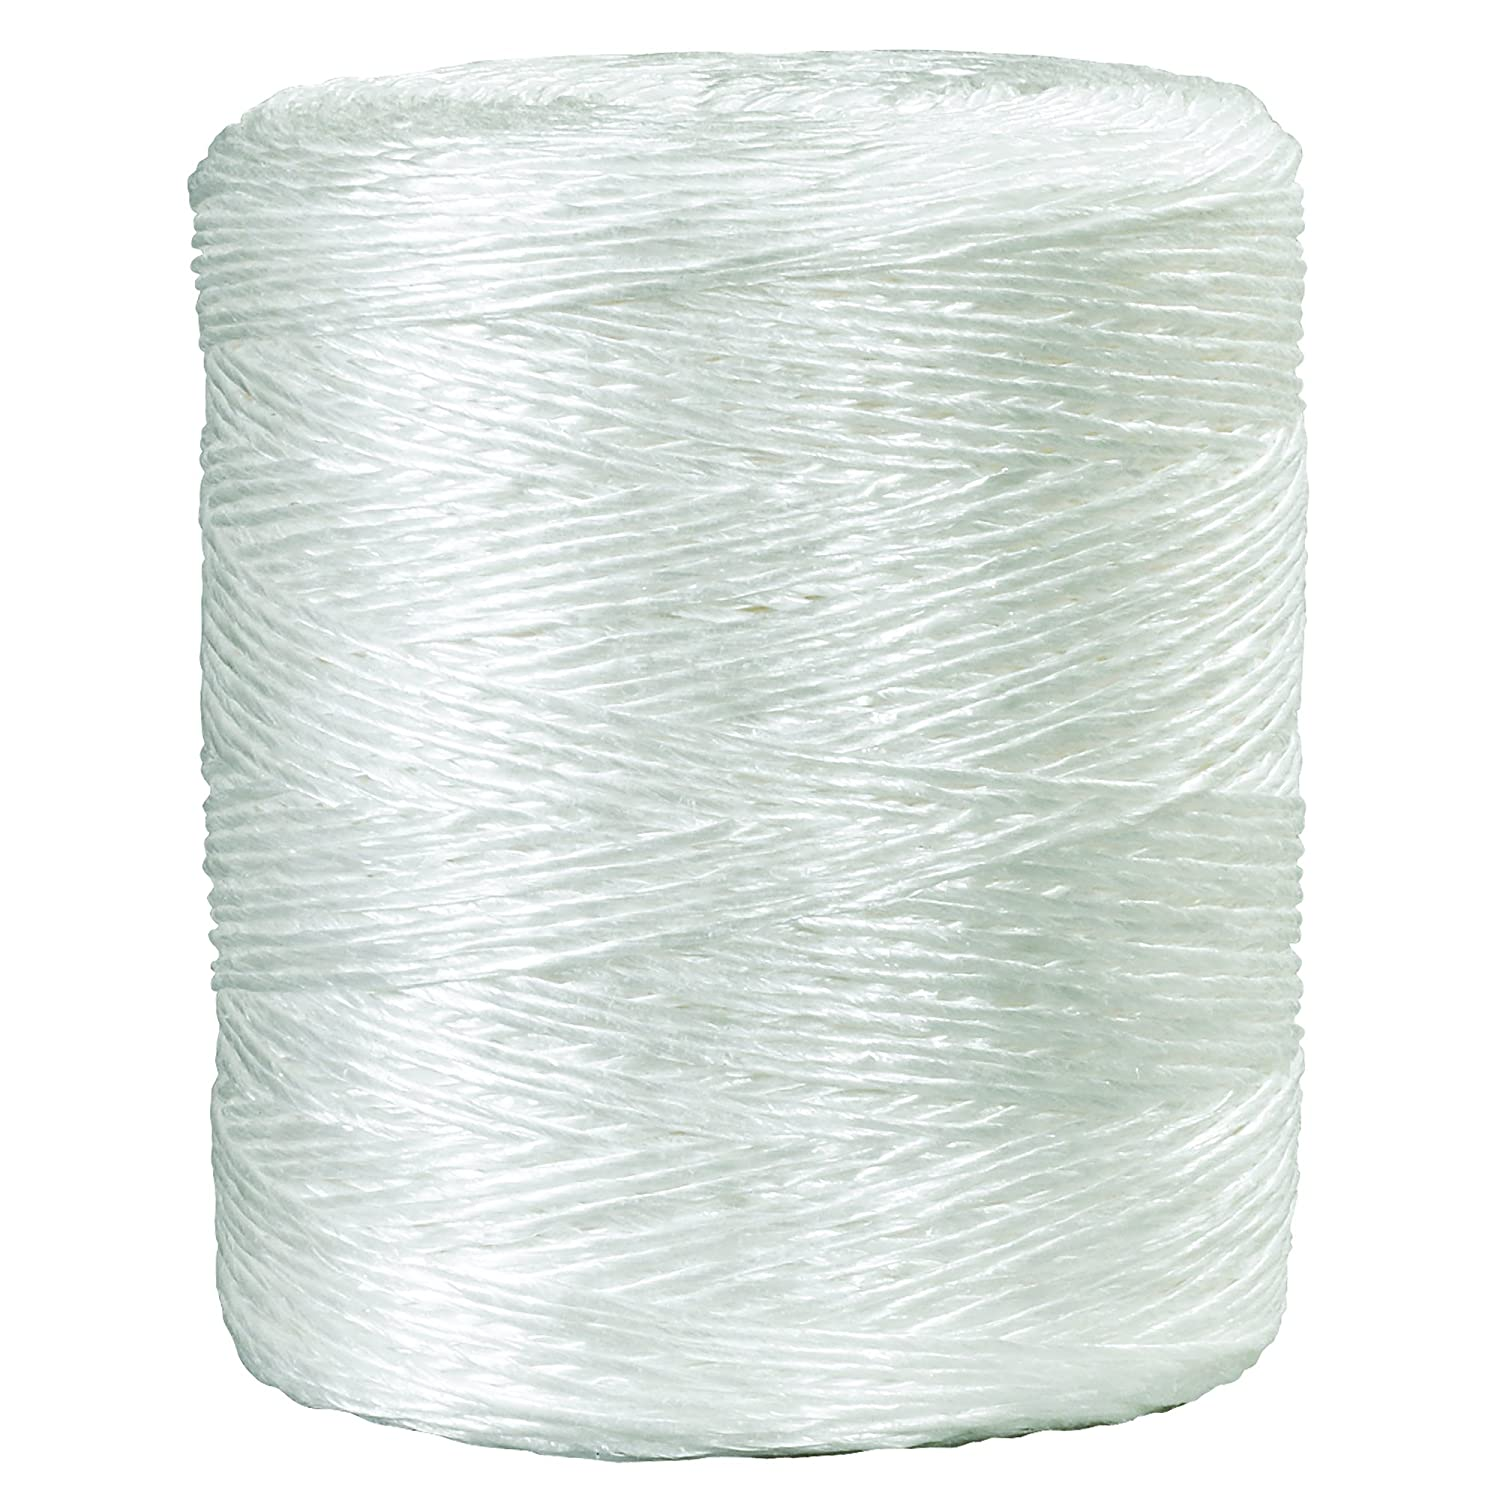 Ship Now Supply SNTWT265 Polypropylene Tying Twine White 2650/' Box Partners 2-Ply 490 lb 2650